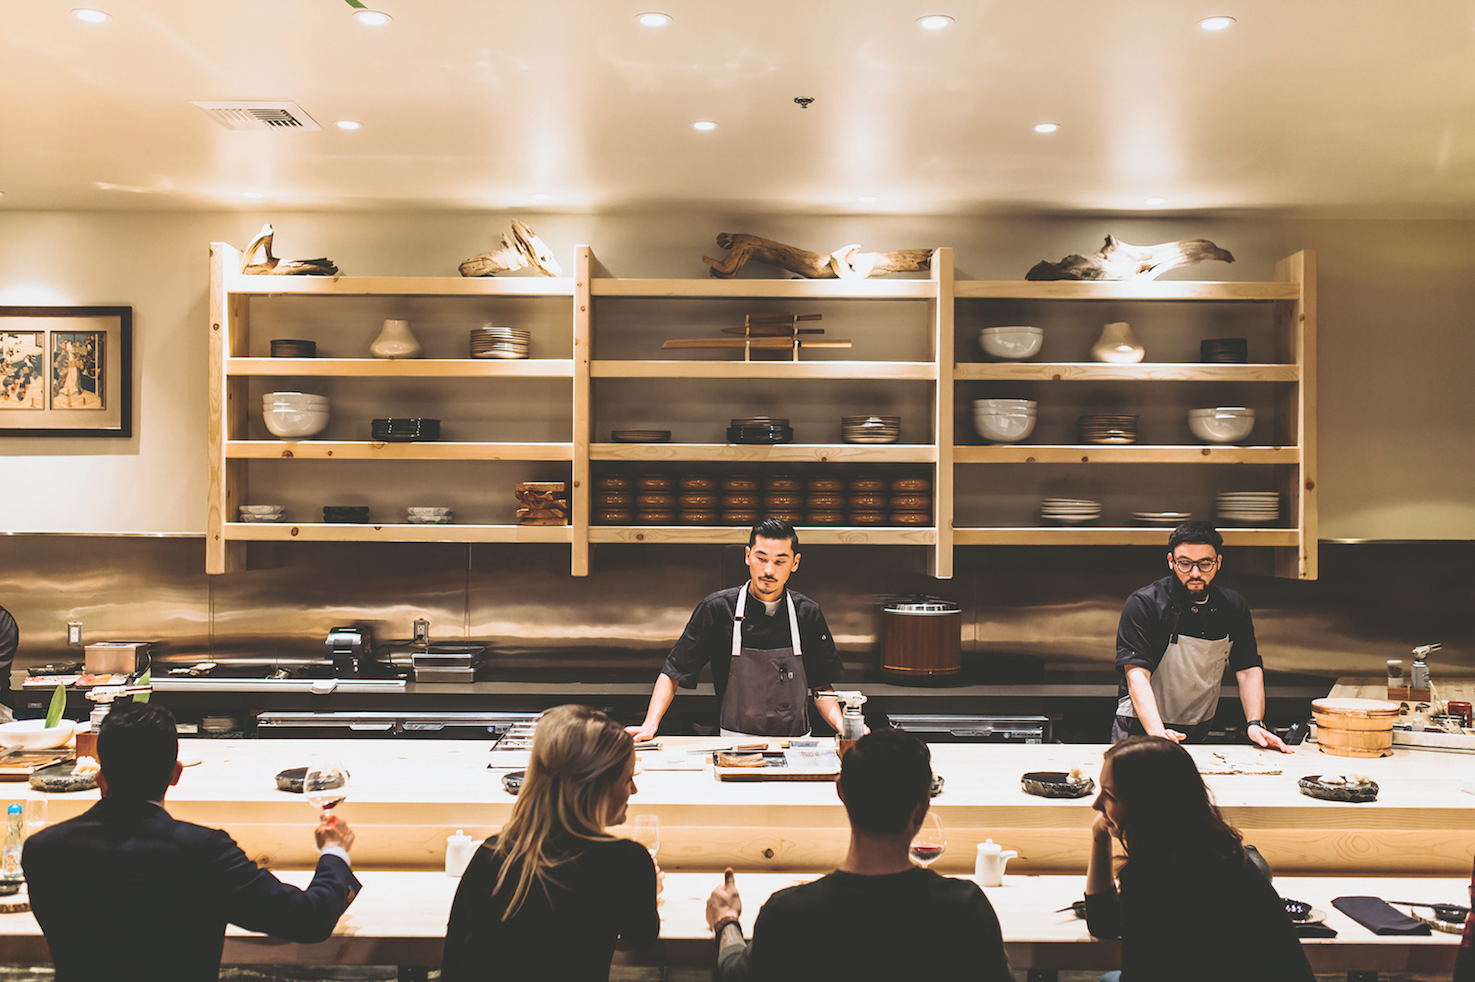 Kru boasts a 30-foot-long sushi bar and shelves displaying artisan ceramics and driftwood. (Photo by Black Field Media)